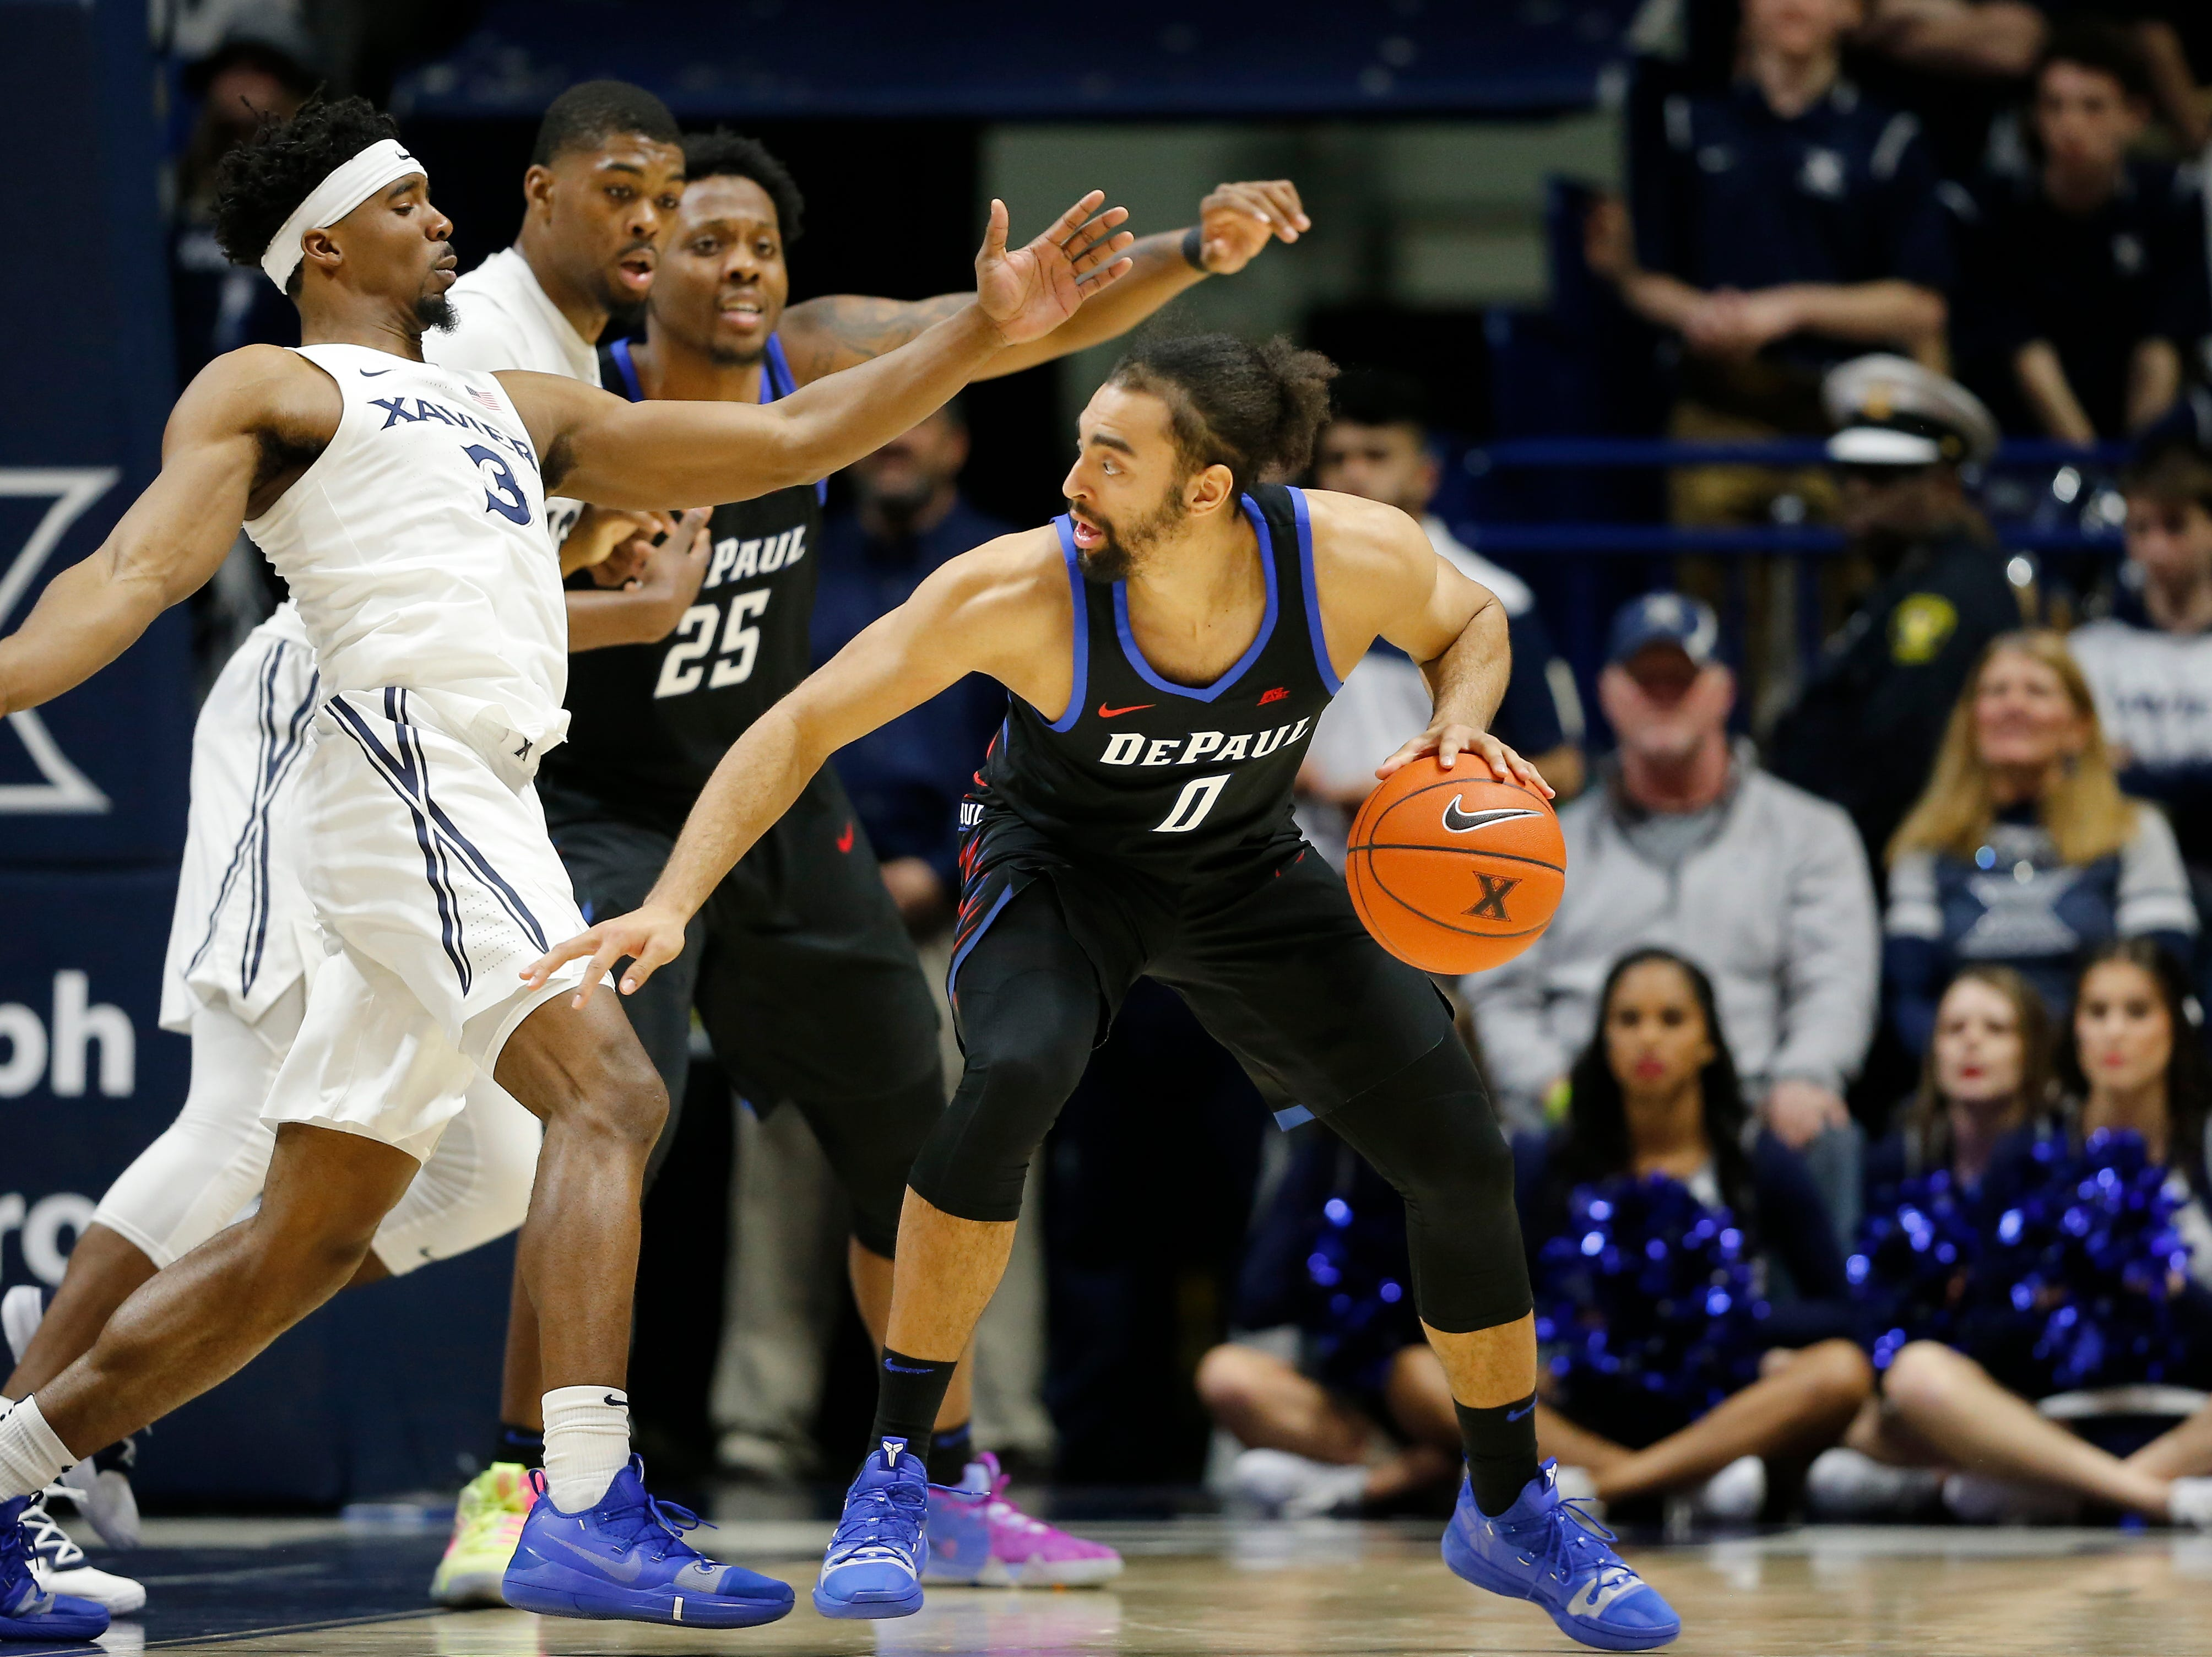 DePaul Blue Demons guard Lyrik Shreiner (0) drives against Xavier Musketeers guard Quentin Goodin (3) in the second half of the NCAA Big East Conference game between the Xavier Musketeers and the DePaul Blue Demons at the Cintas Center in Cincinnati on Saturday, Feb. 9, 2019. Xavier lost its sixth game in a row, 74-62.